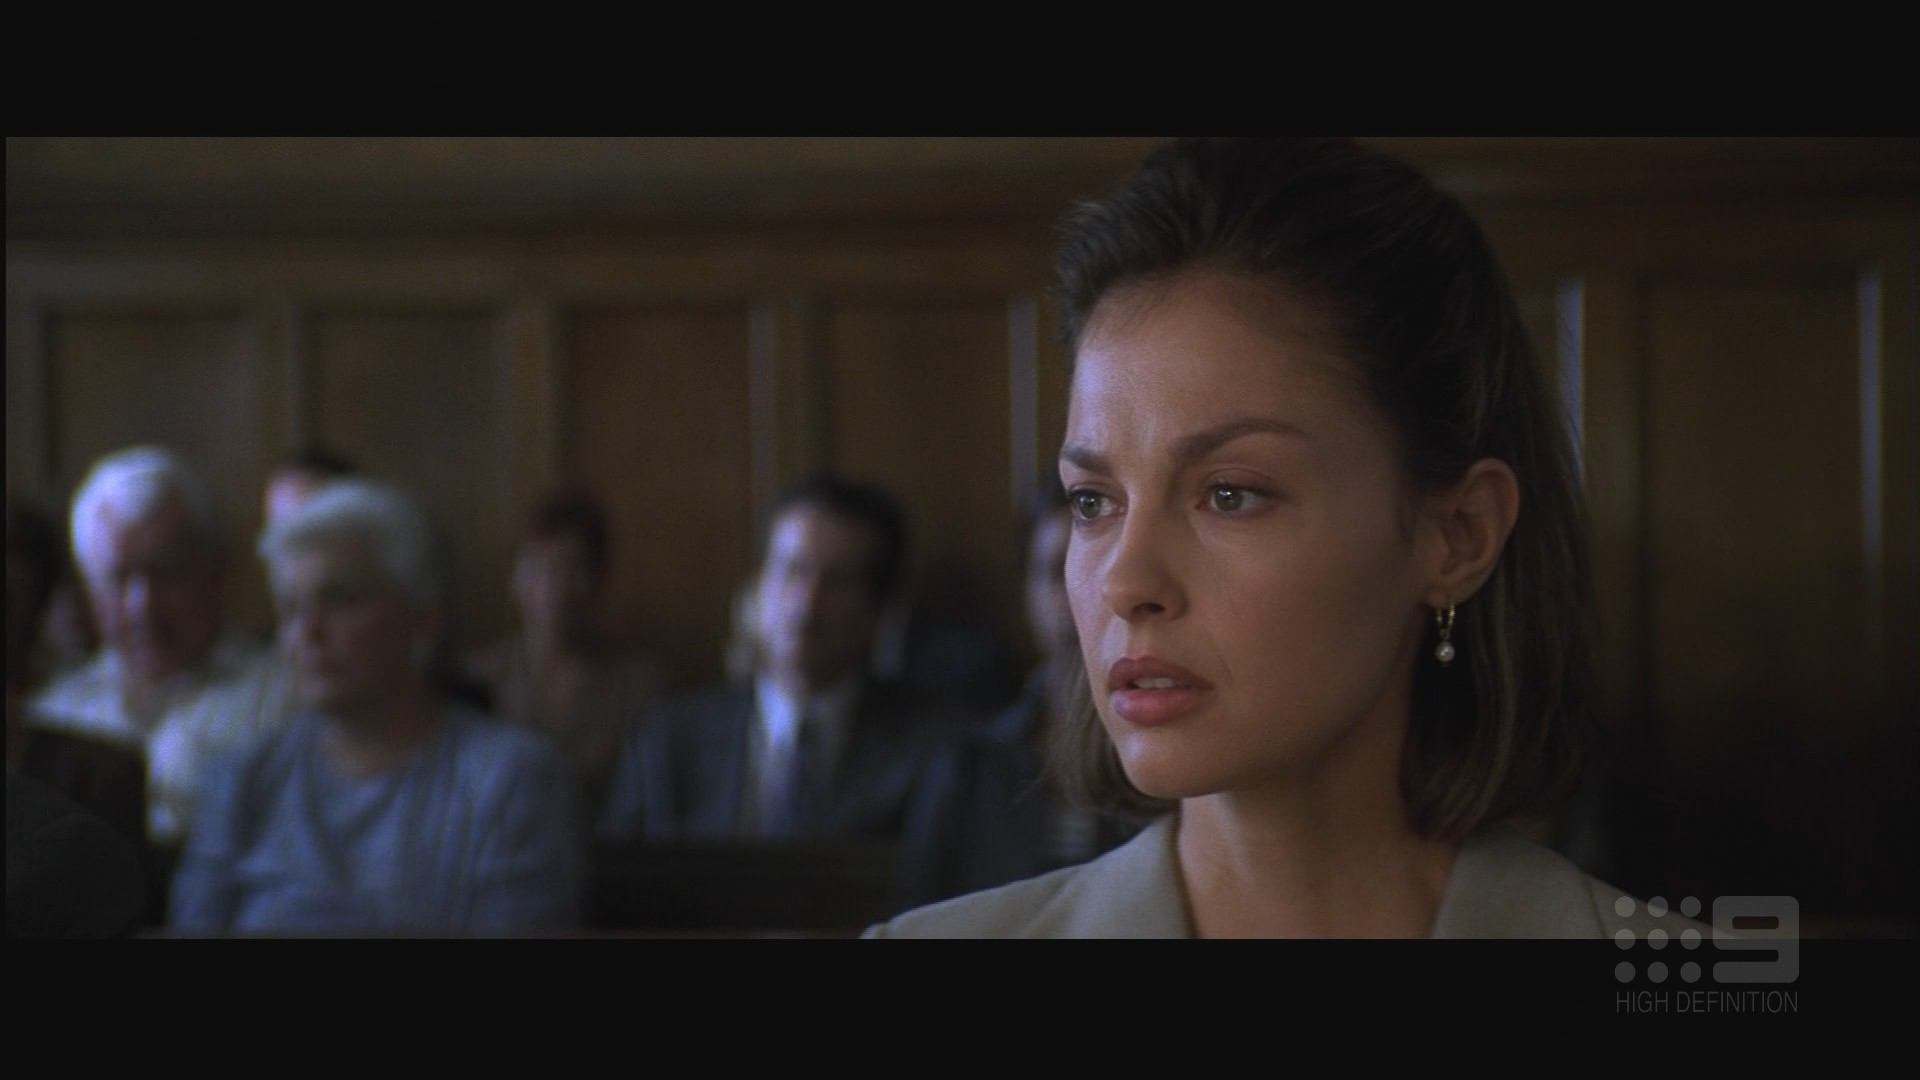 an analysis of the film double jeopardy In the nsfw clip above, from the 1999 movie double jeopardy, ashley judd's character is in prison after being convicted for murdering her husband-who she later learns is still alive and framed her for murder to run off with her best friend, as opposed to hiring a divorce attorney like most people would do.